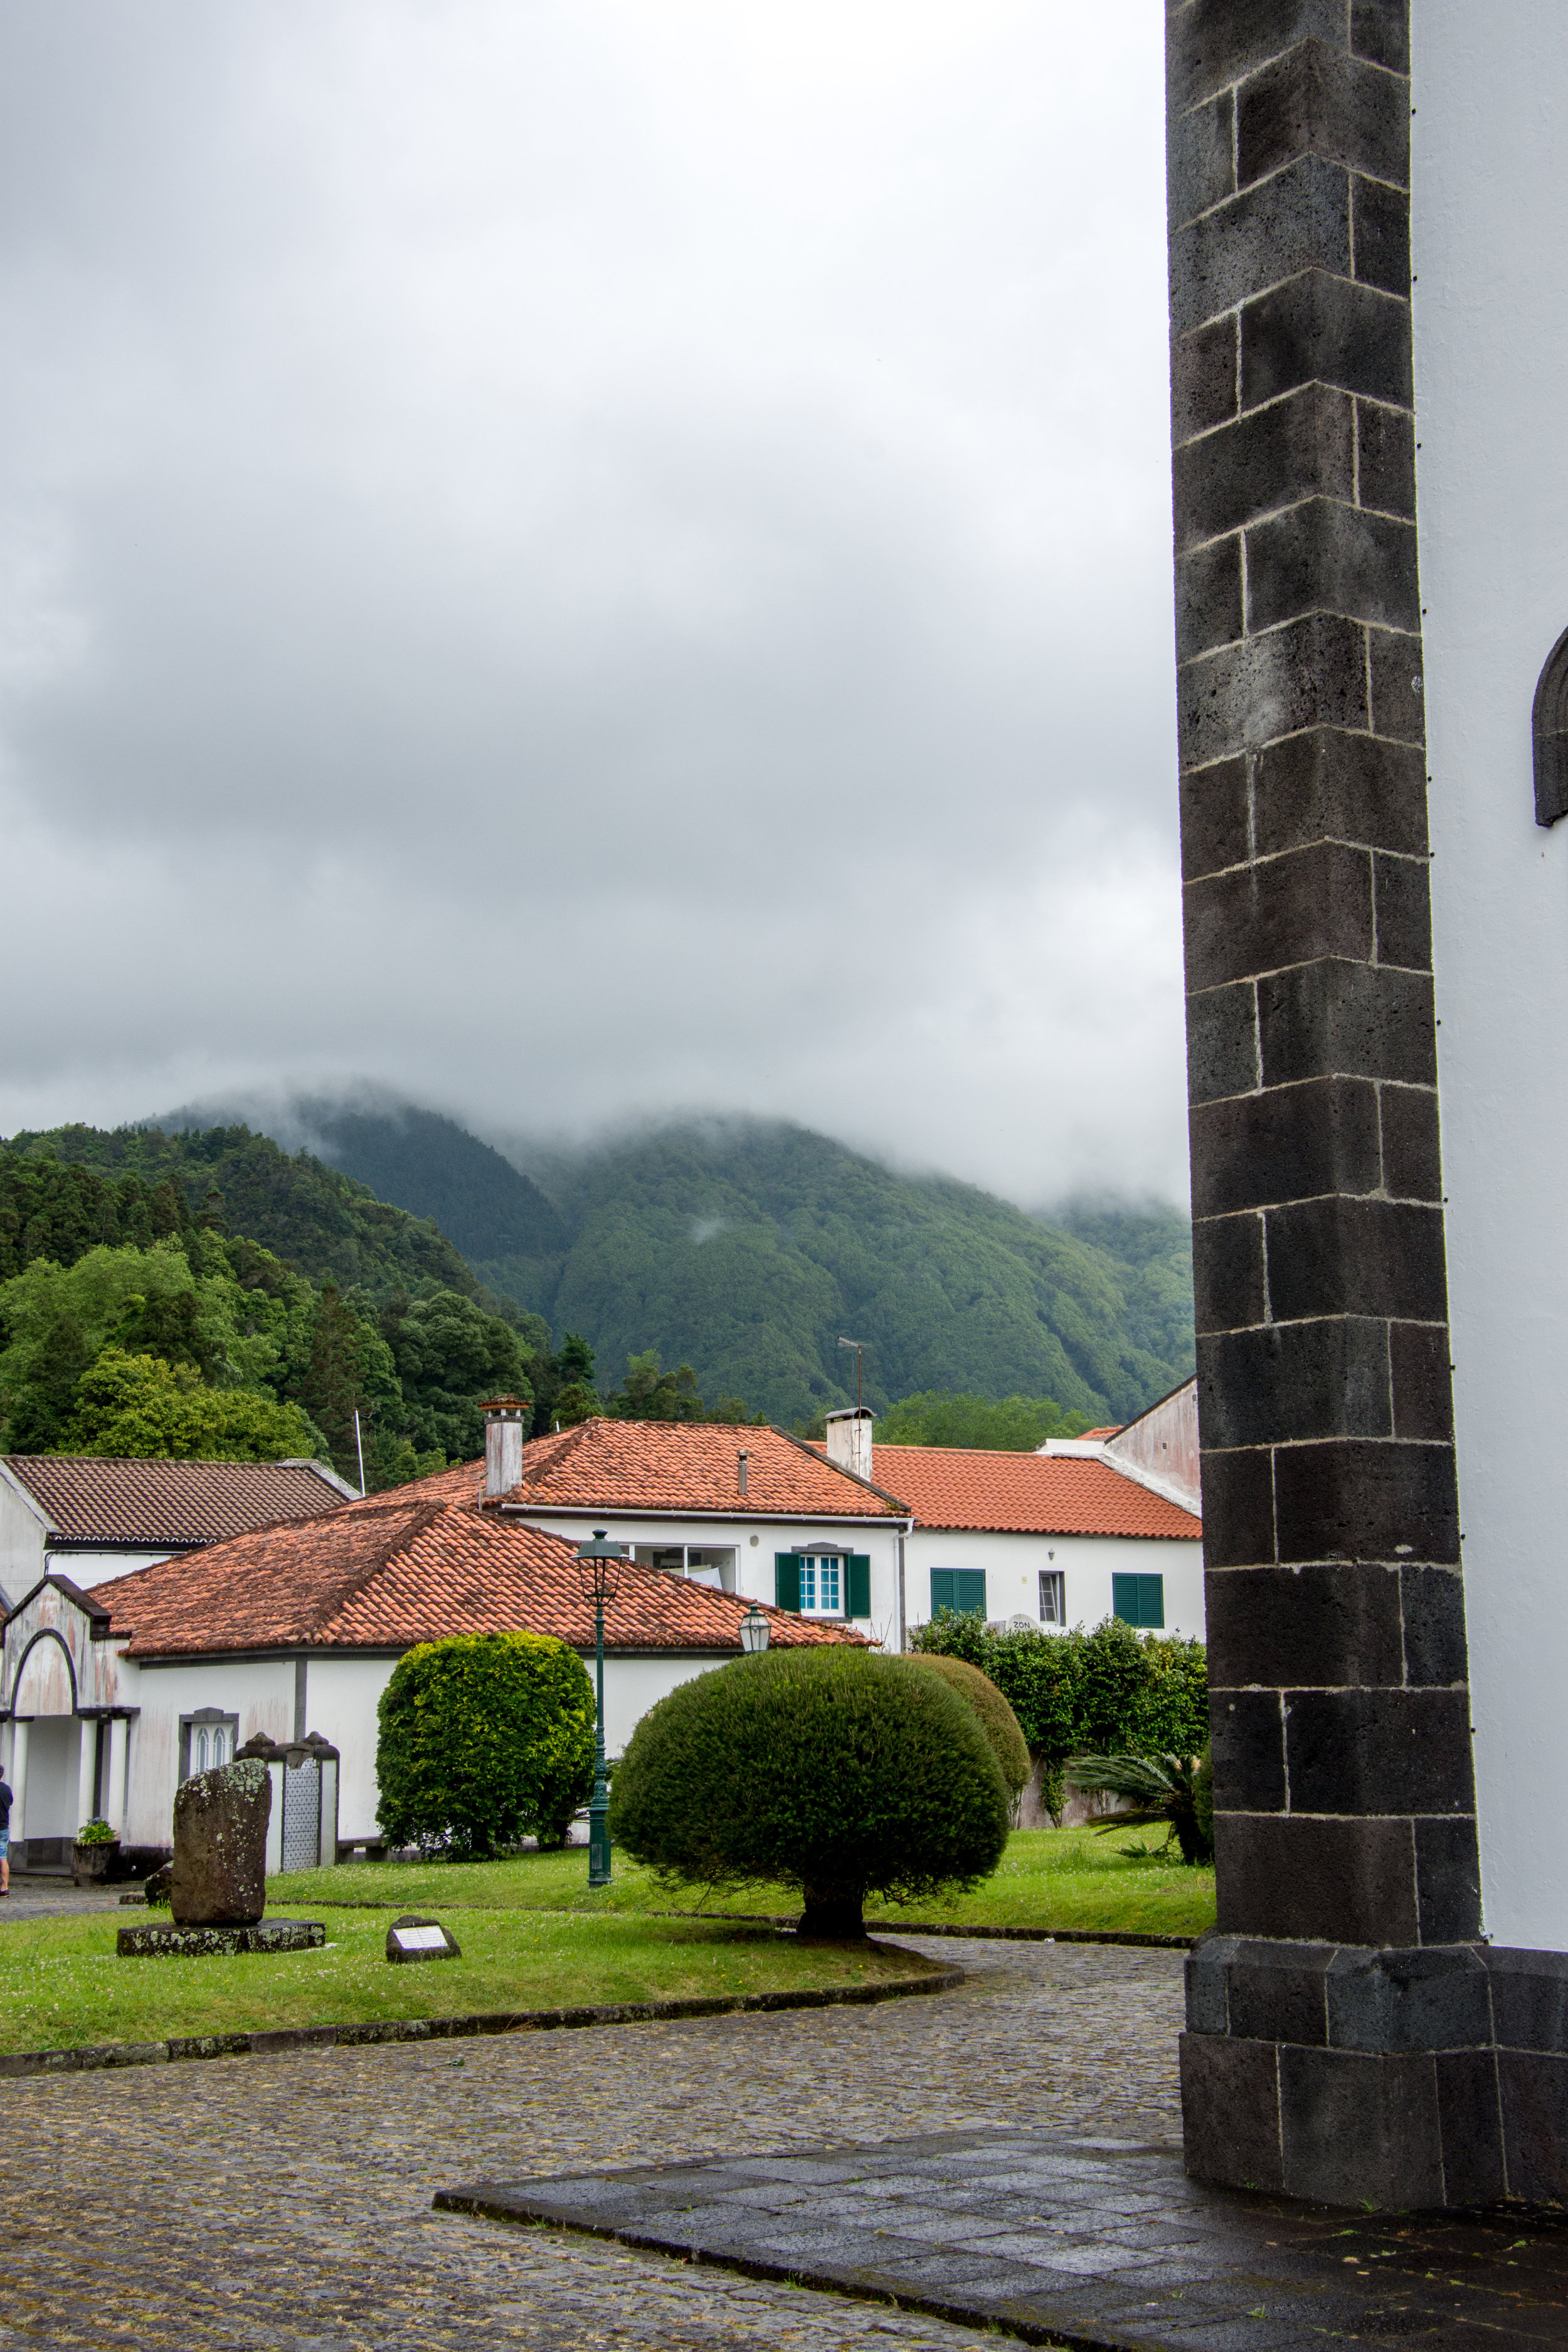 Buildings of the city of Furnas